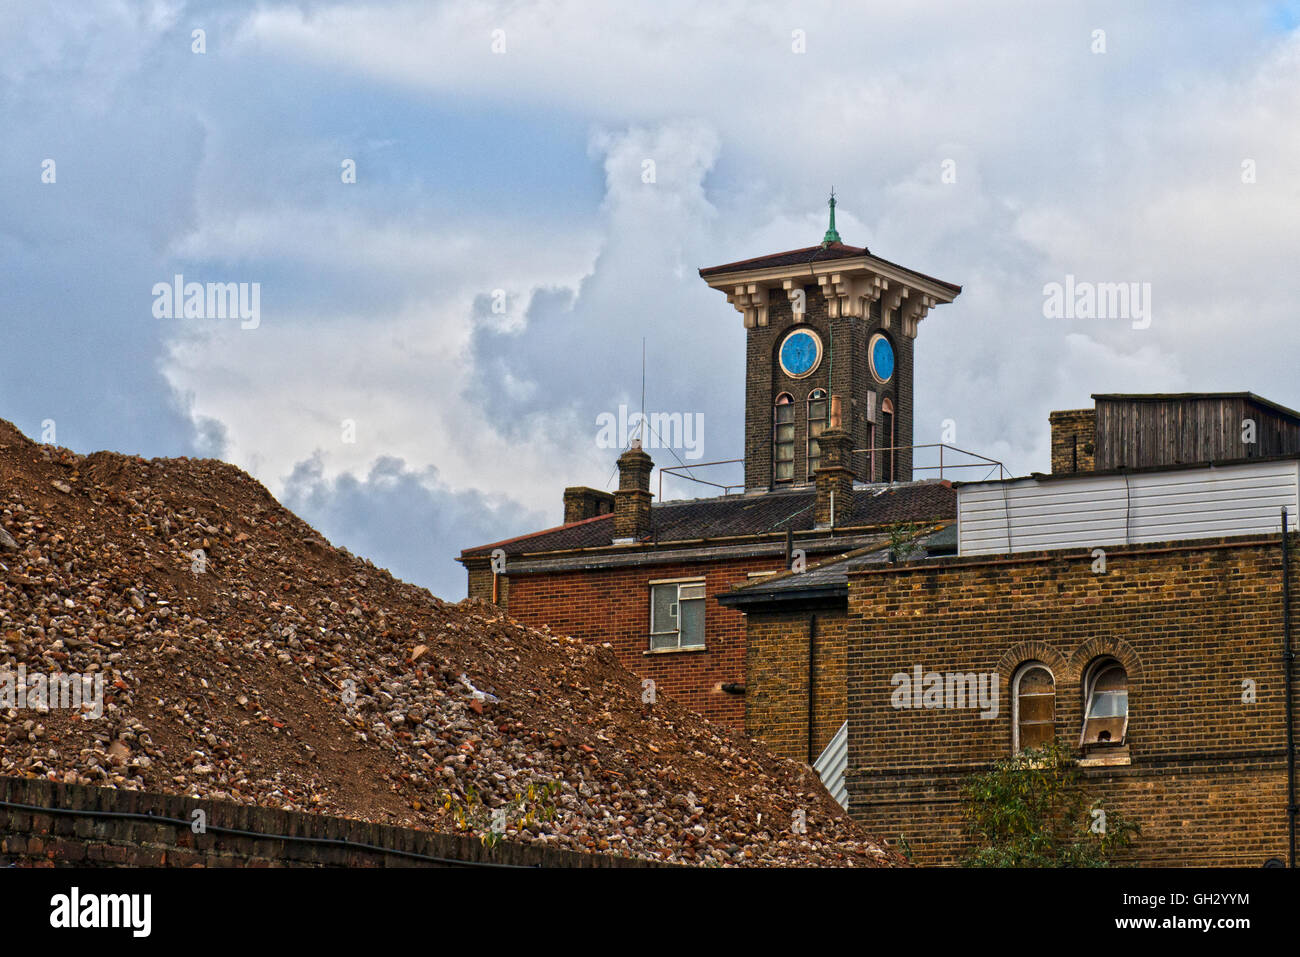 The old workhouse section now demolished at St Clements Hospital in London's East End before the major redevelopment. - Stock Image